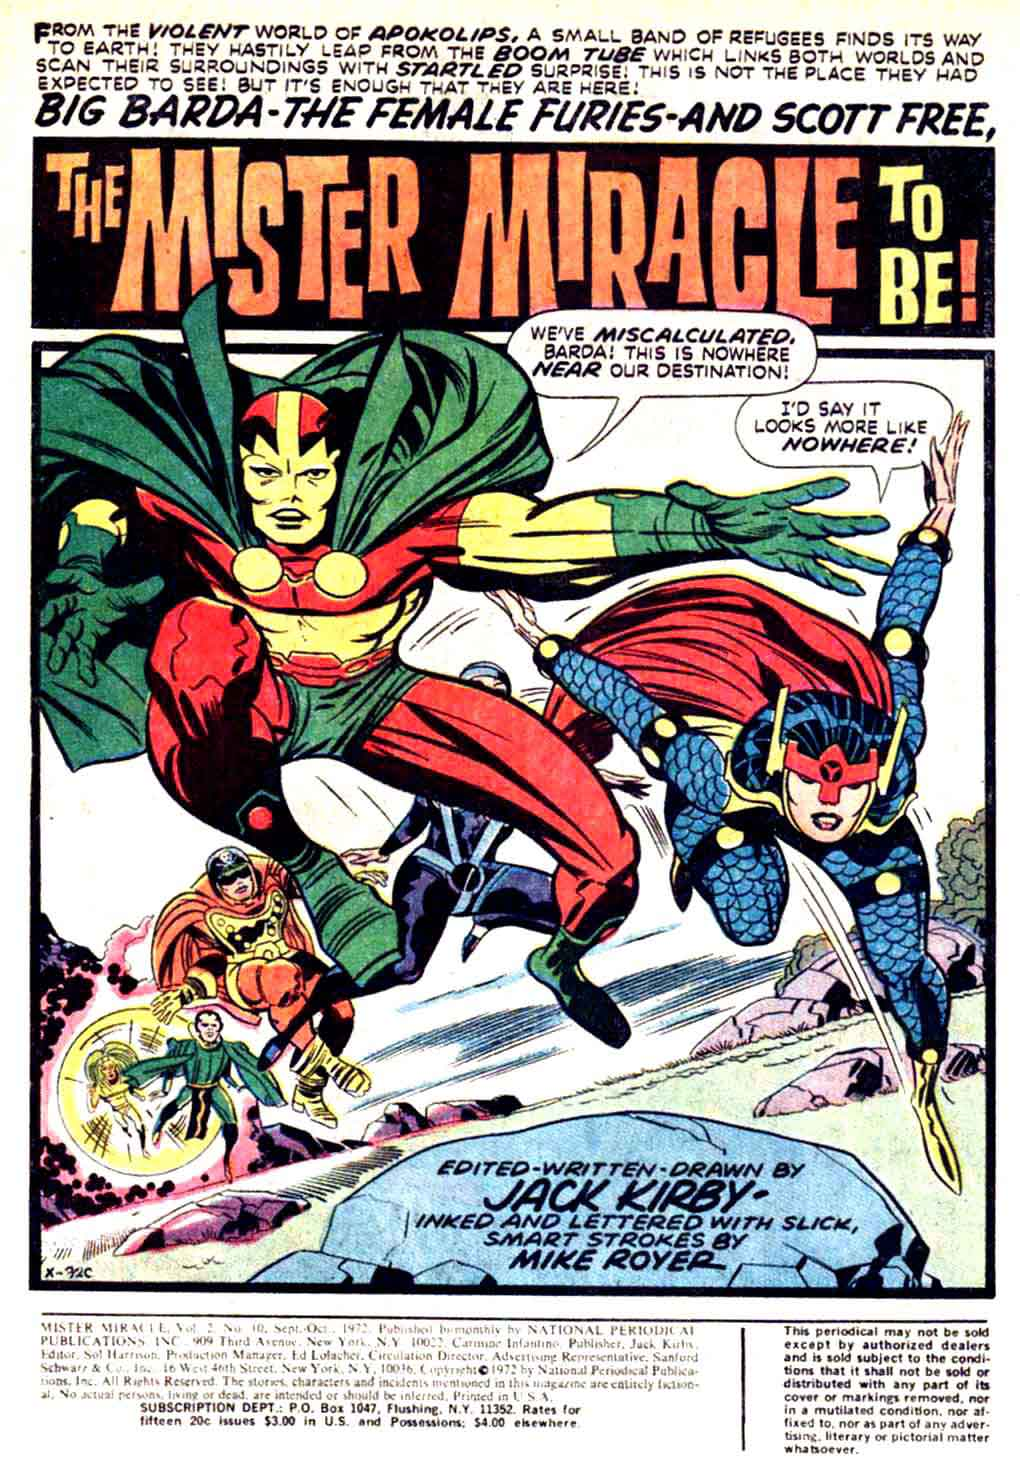 Mister Miracle v1 #10 dc 1970s bronze age comic book page art by Jack Kirby